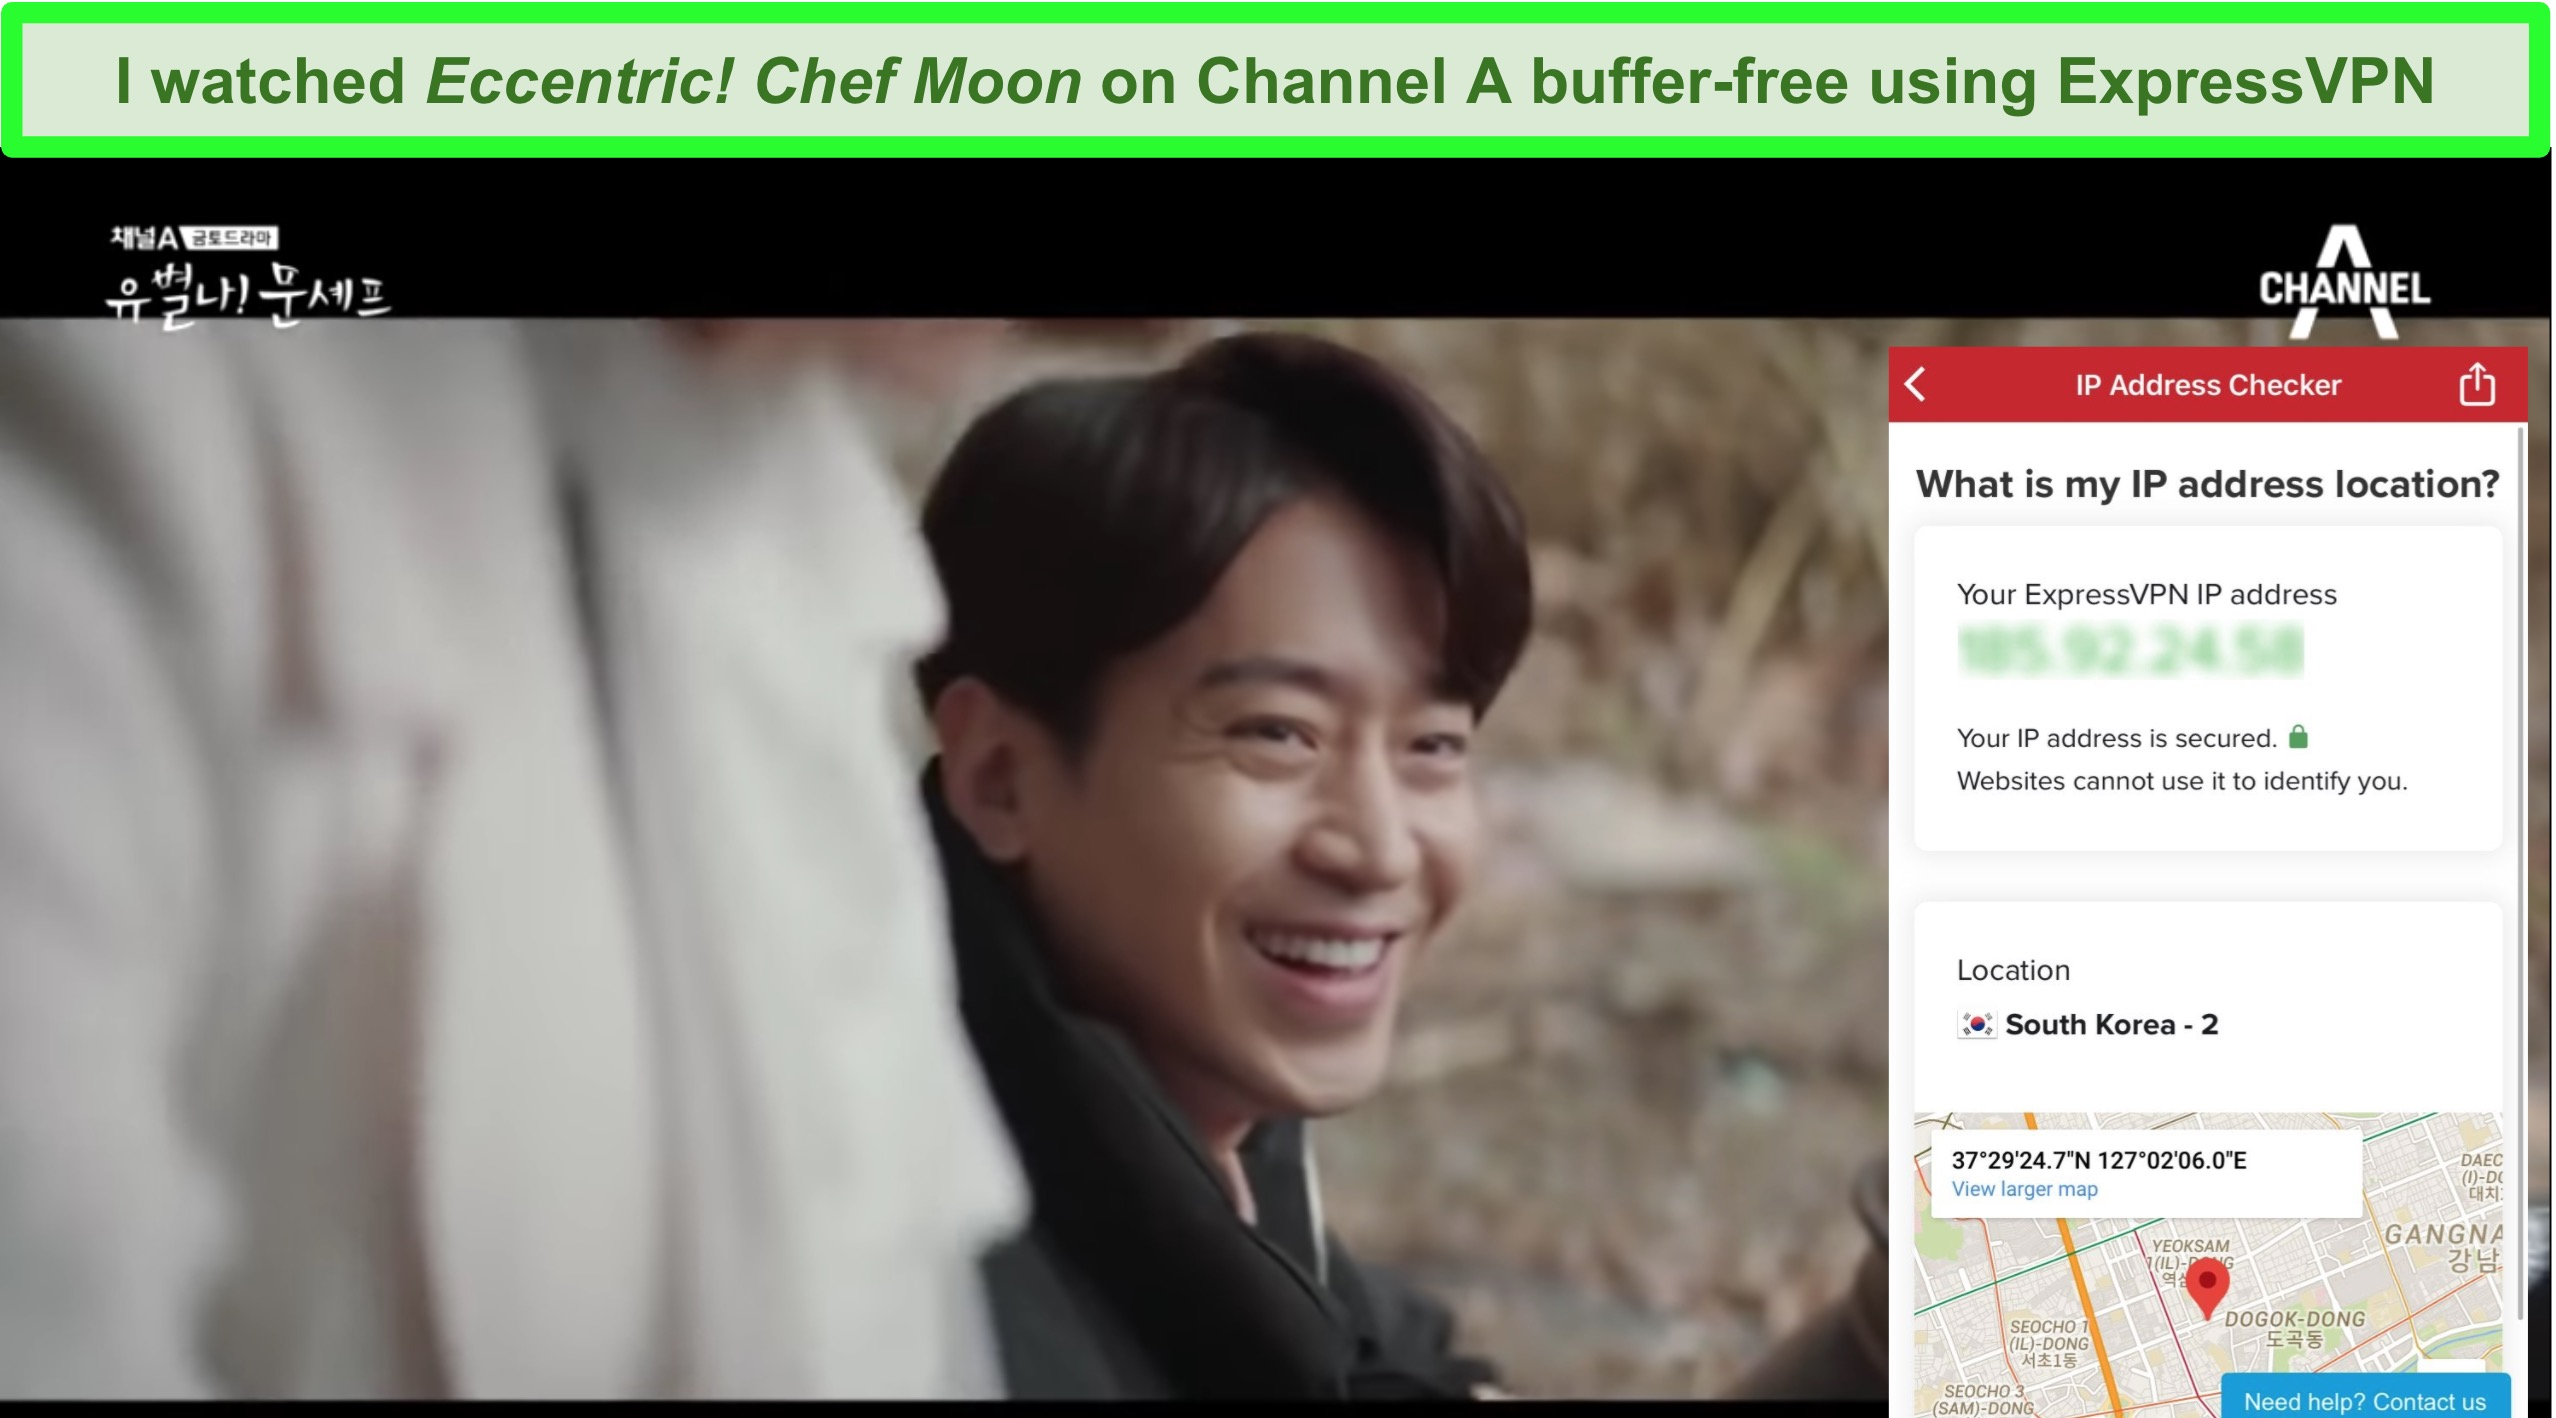 Screenshot of Eccentric! Chef Moon with ExpressVPN connected